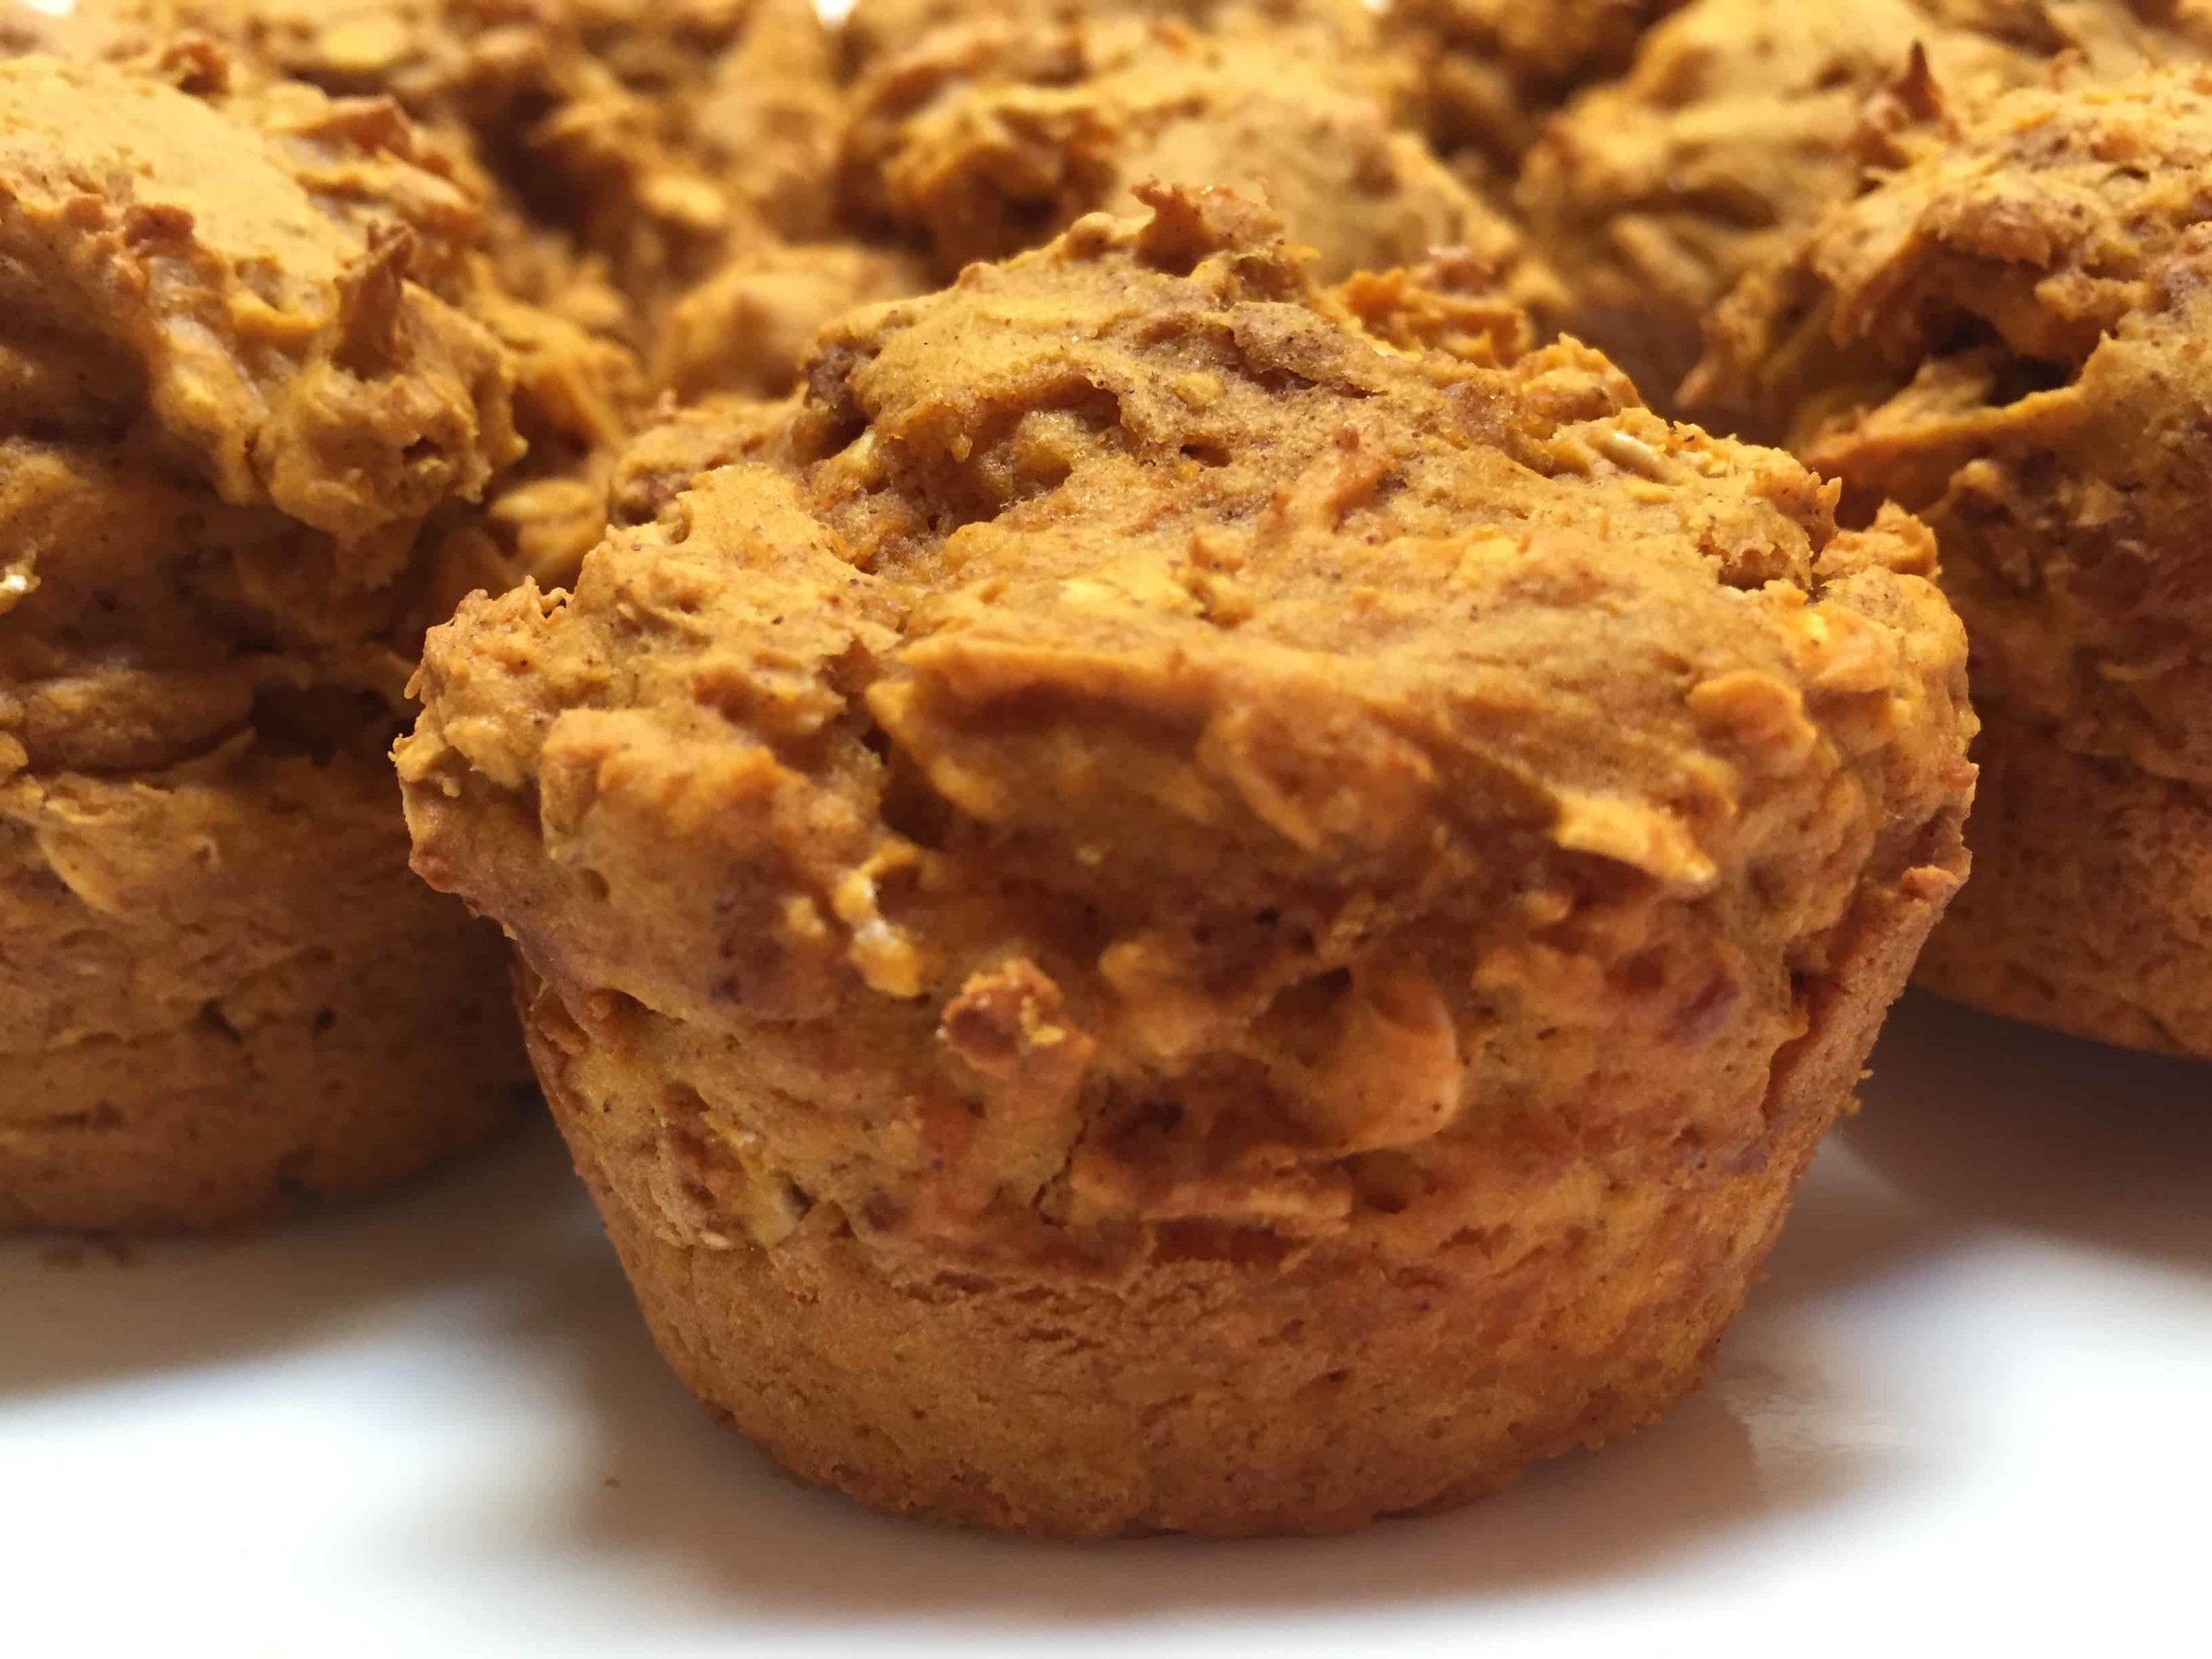 Pumpkin lactation muffins for breastfeeding and pumping moms